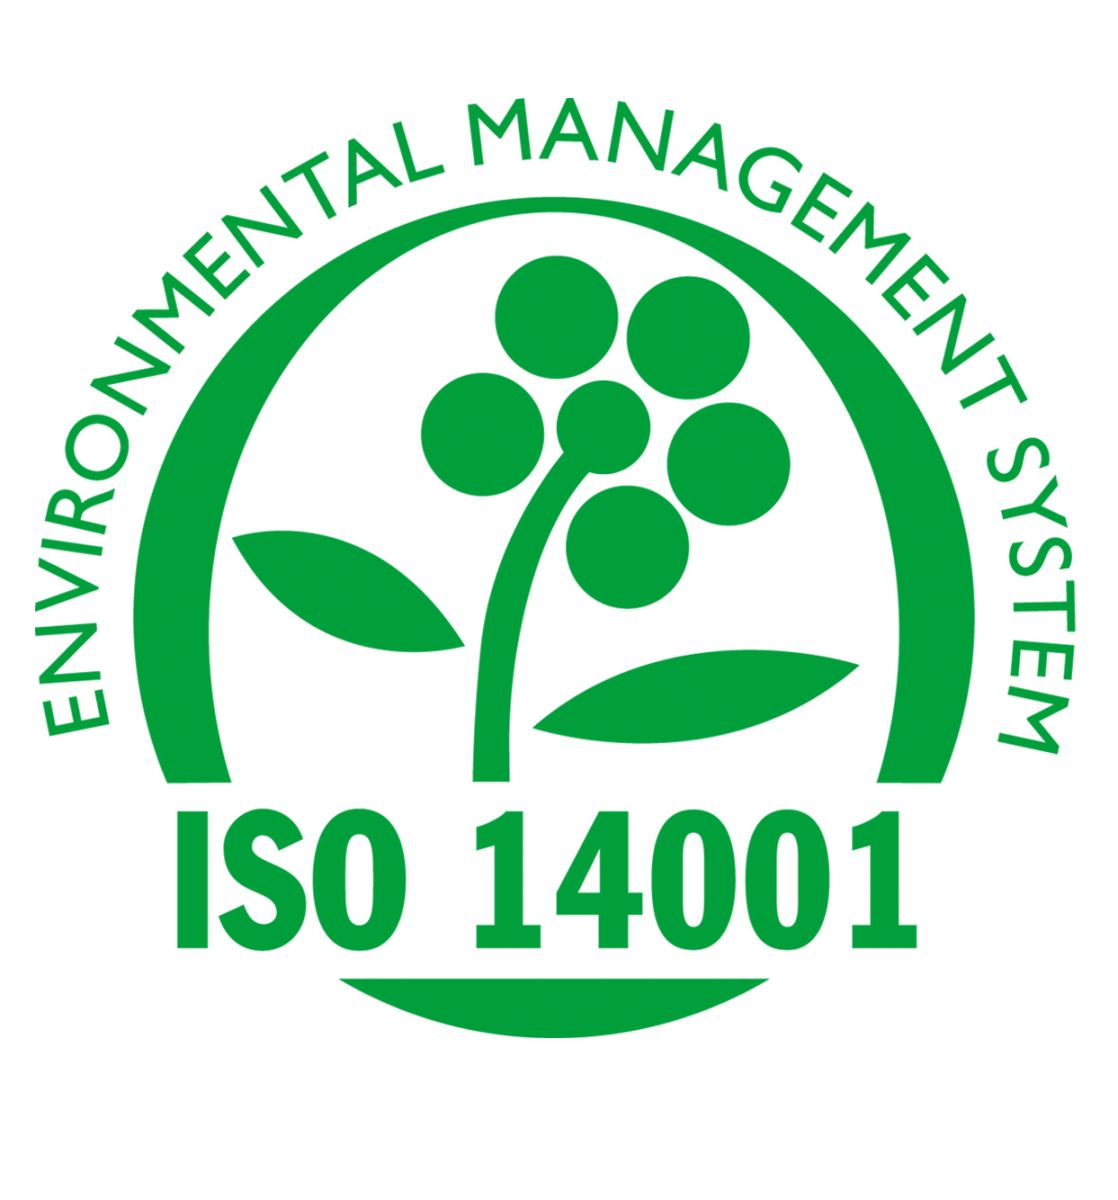 Environmental Management System ISO 14001 logo